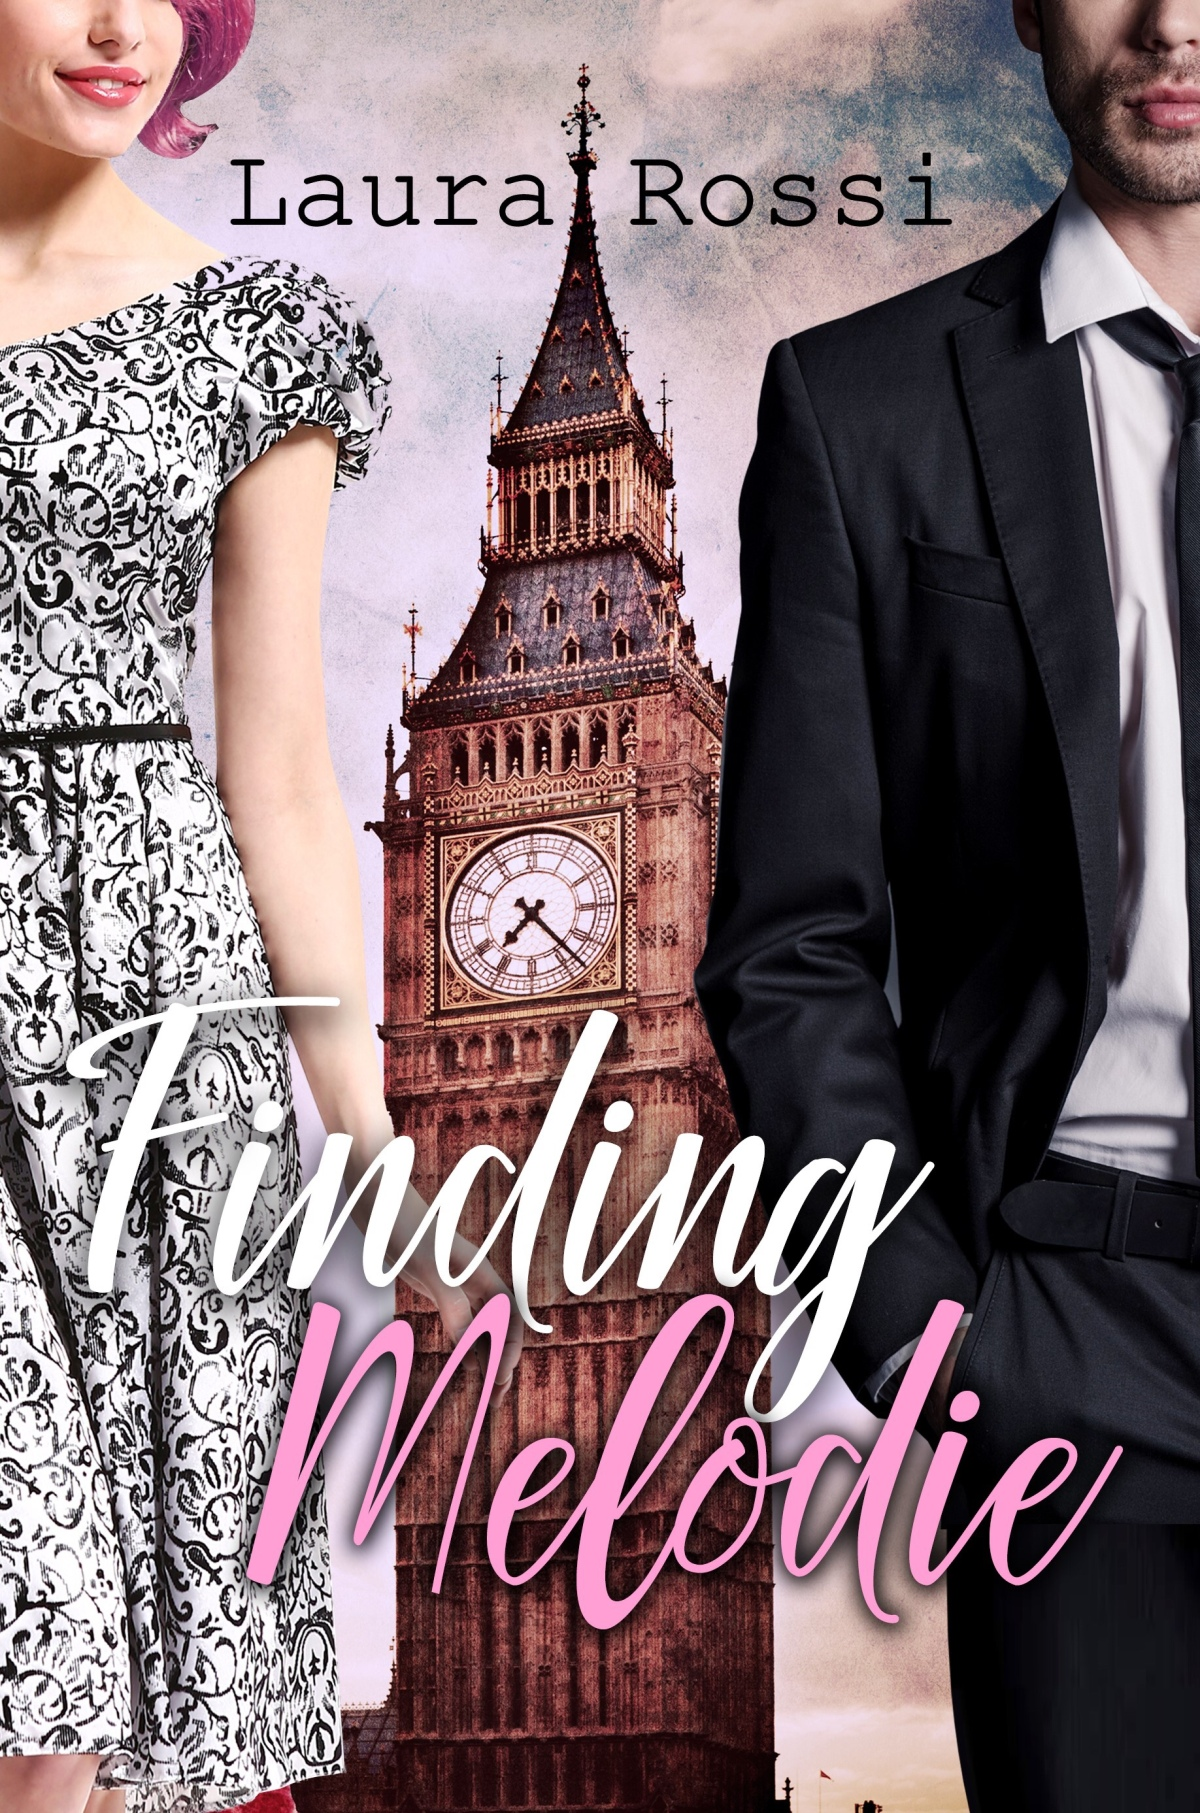 💞 Finding Melodie By Laura Rossi 💞